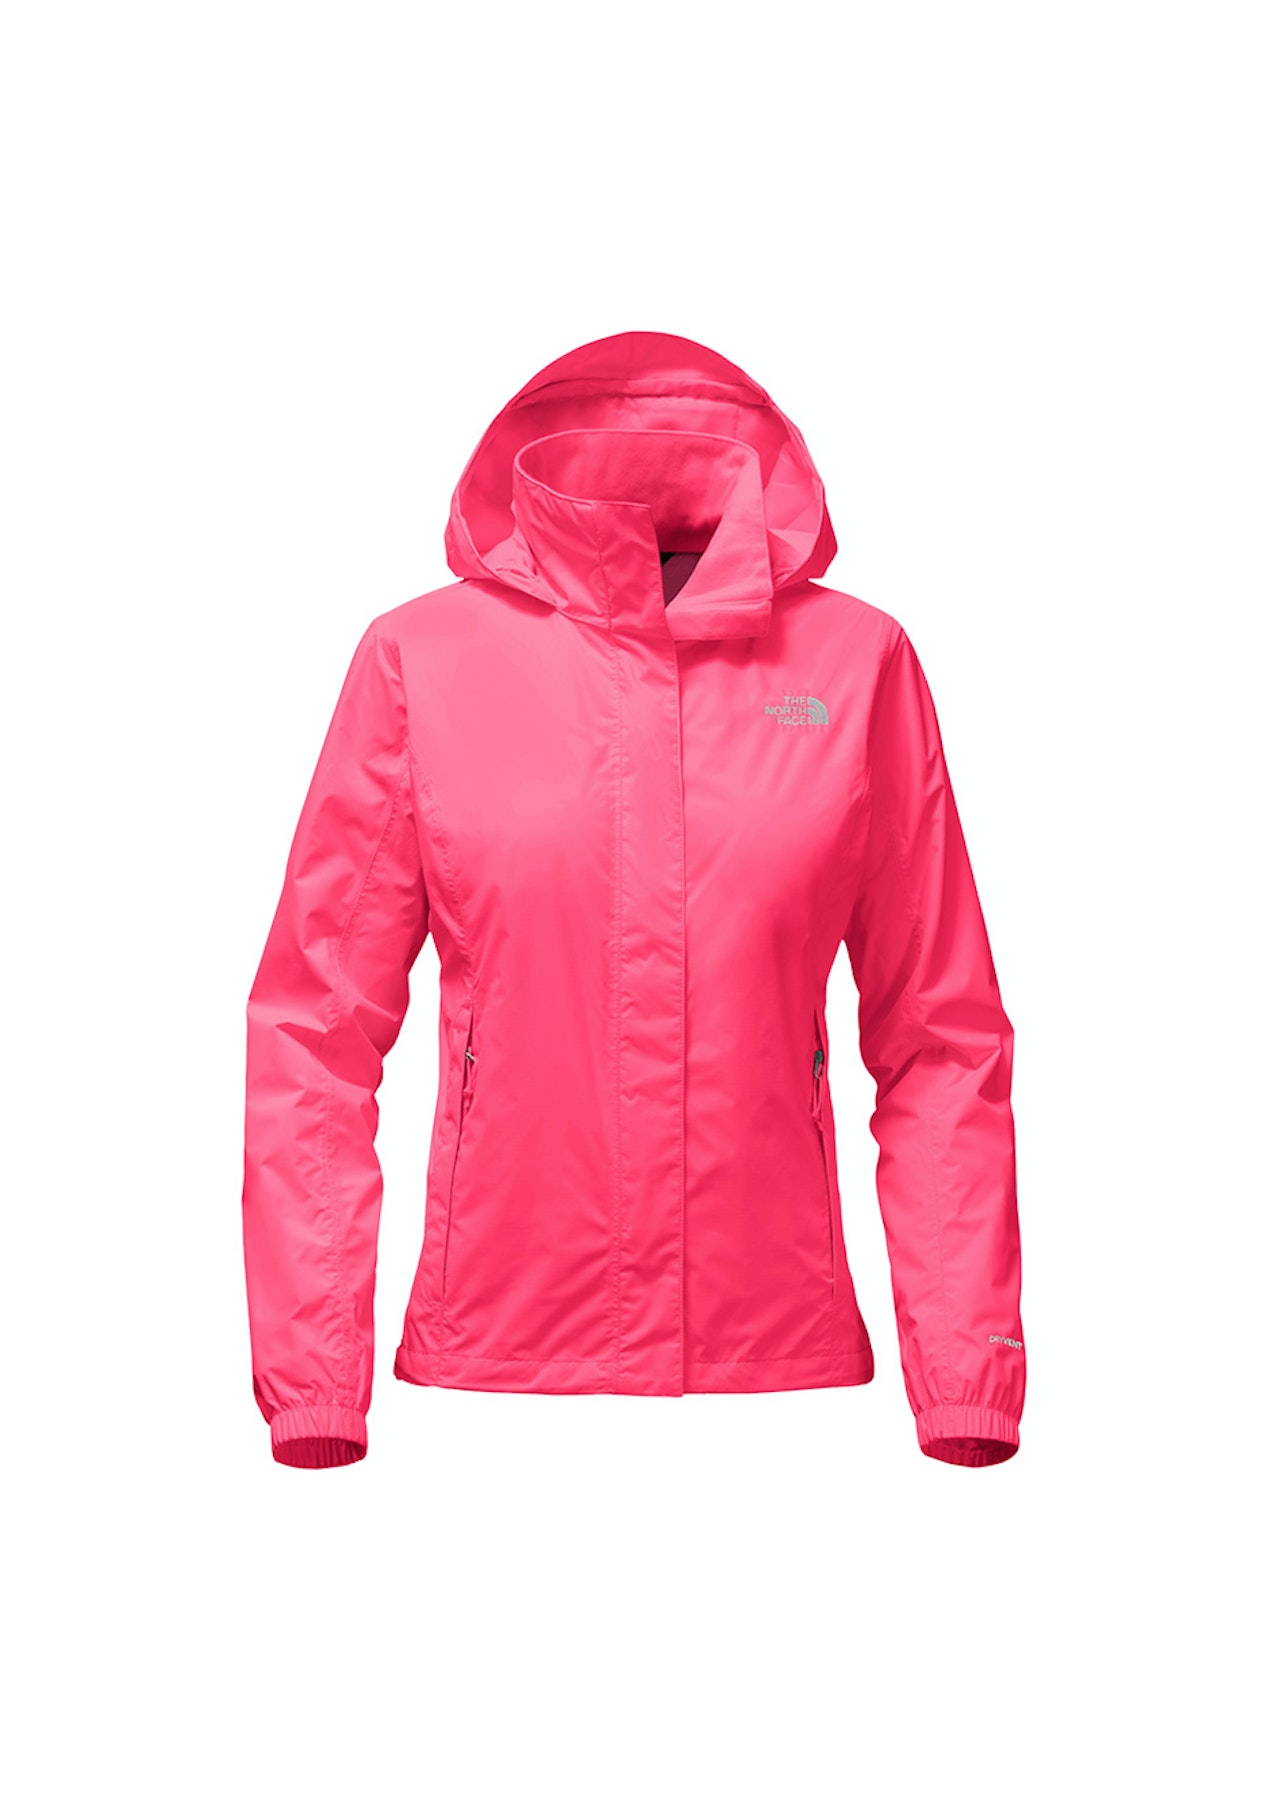 4adeabda4 The North Face - Resolve 2 Jacket Honeysuckle Pink - Womens